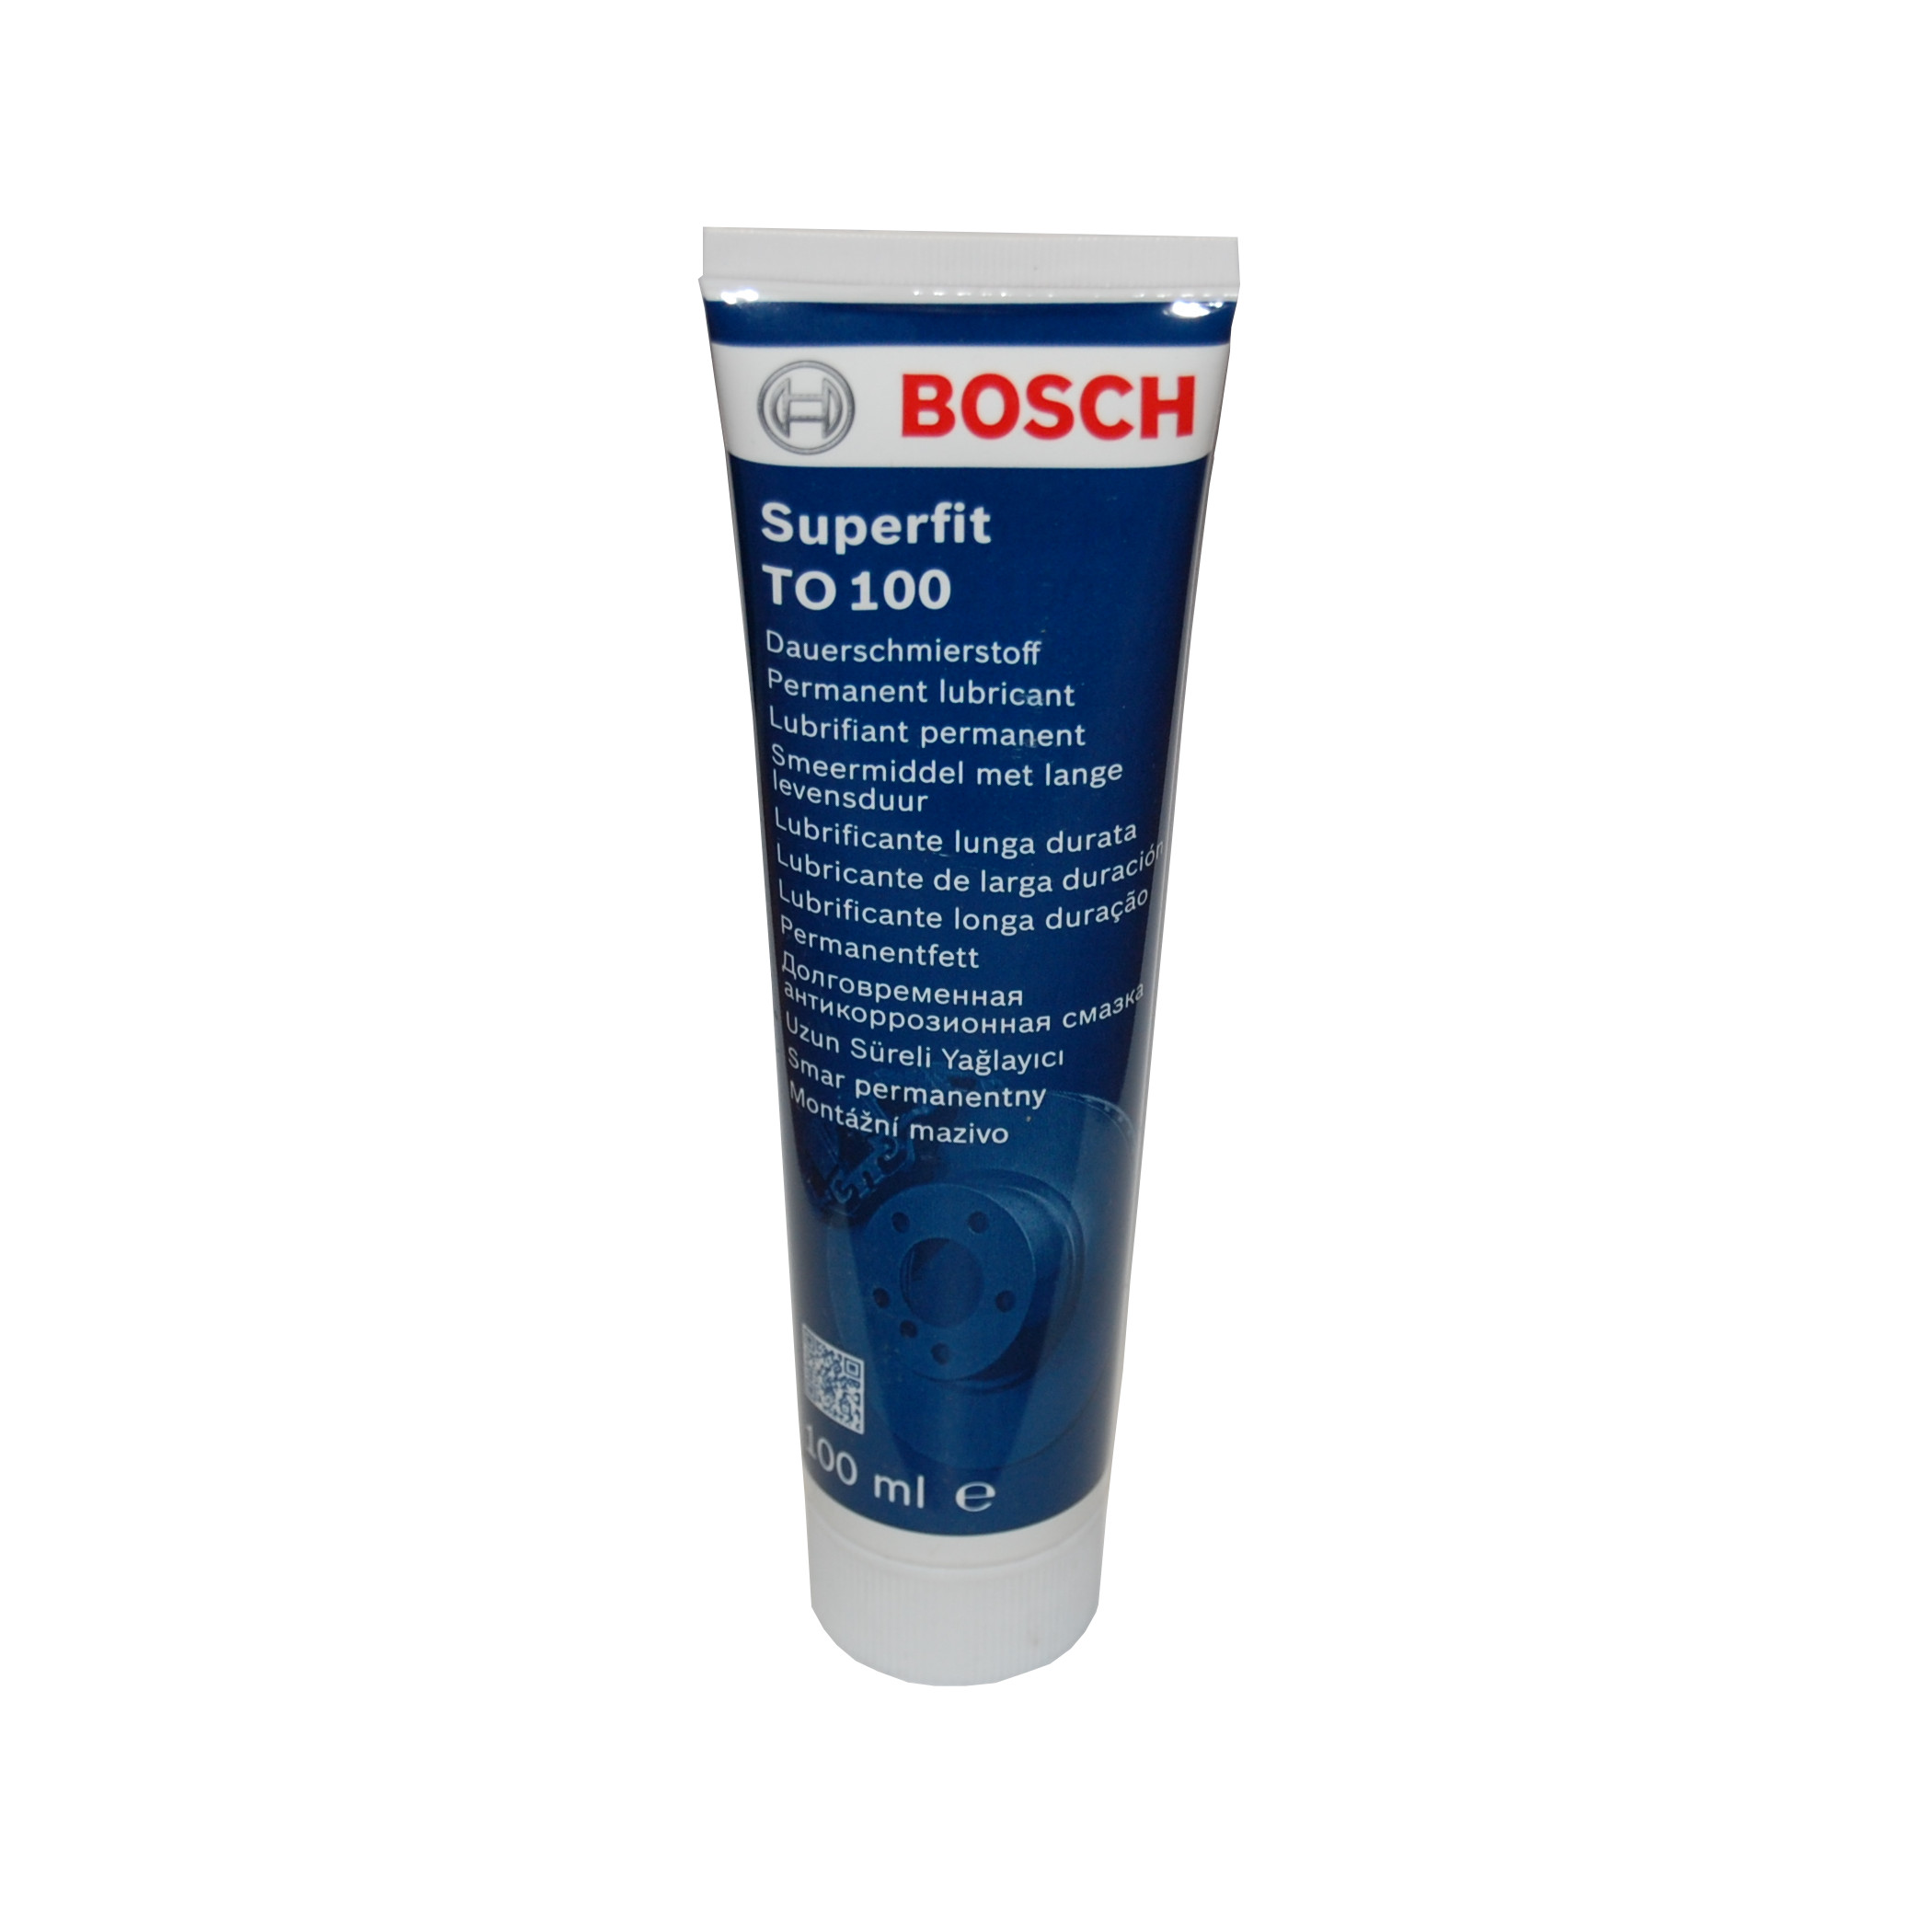 Picture of BOSCH SUPERFIT grease for brakes and clamps